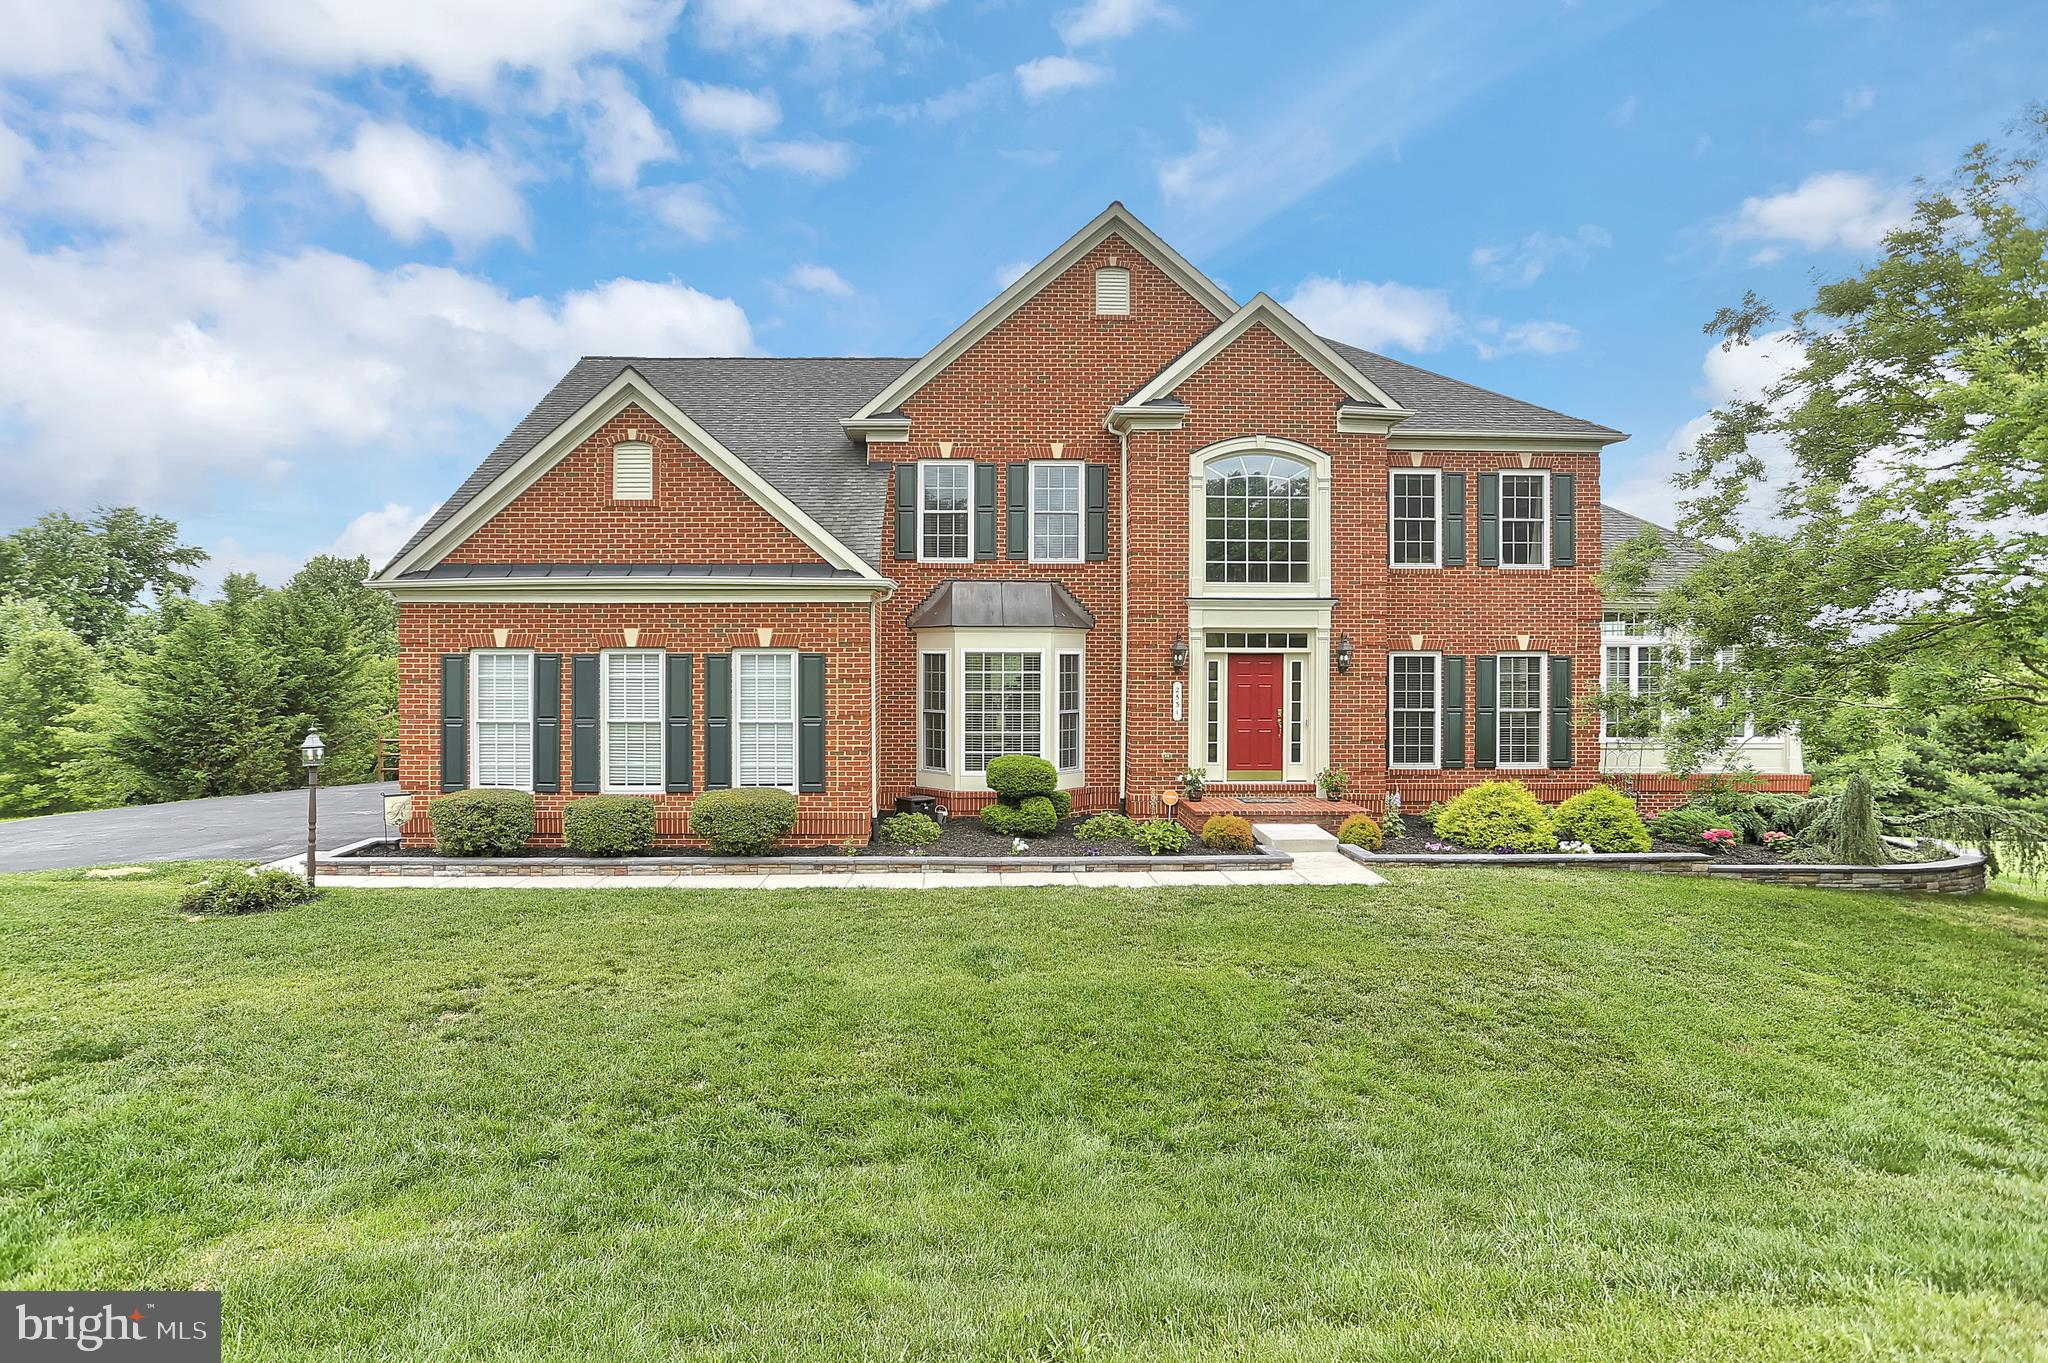 2531 FLORA MEADOWS DRIVE, FOREST HILL, MD 21050